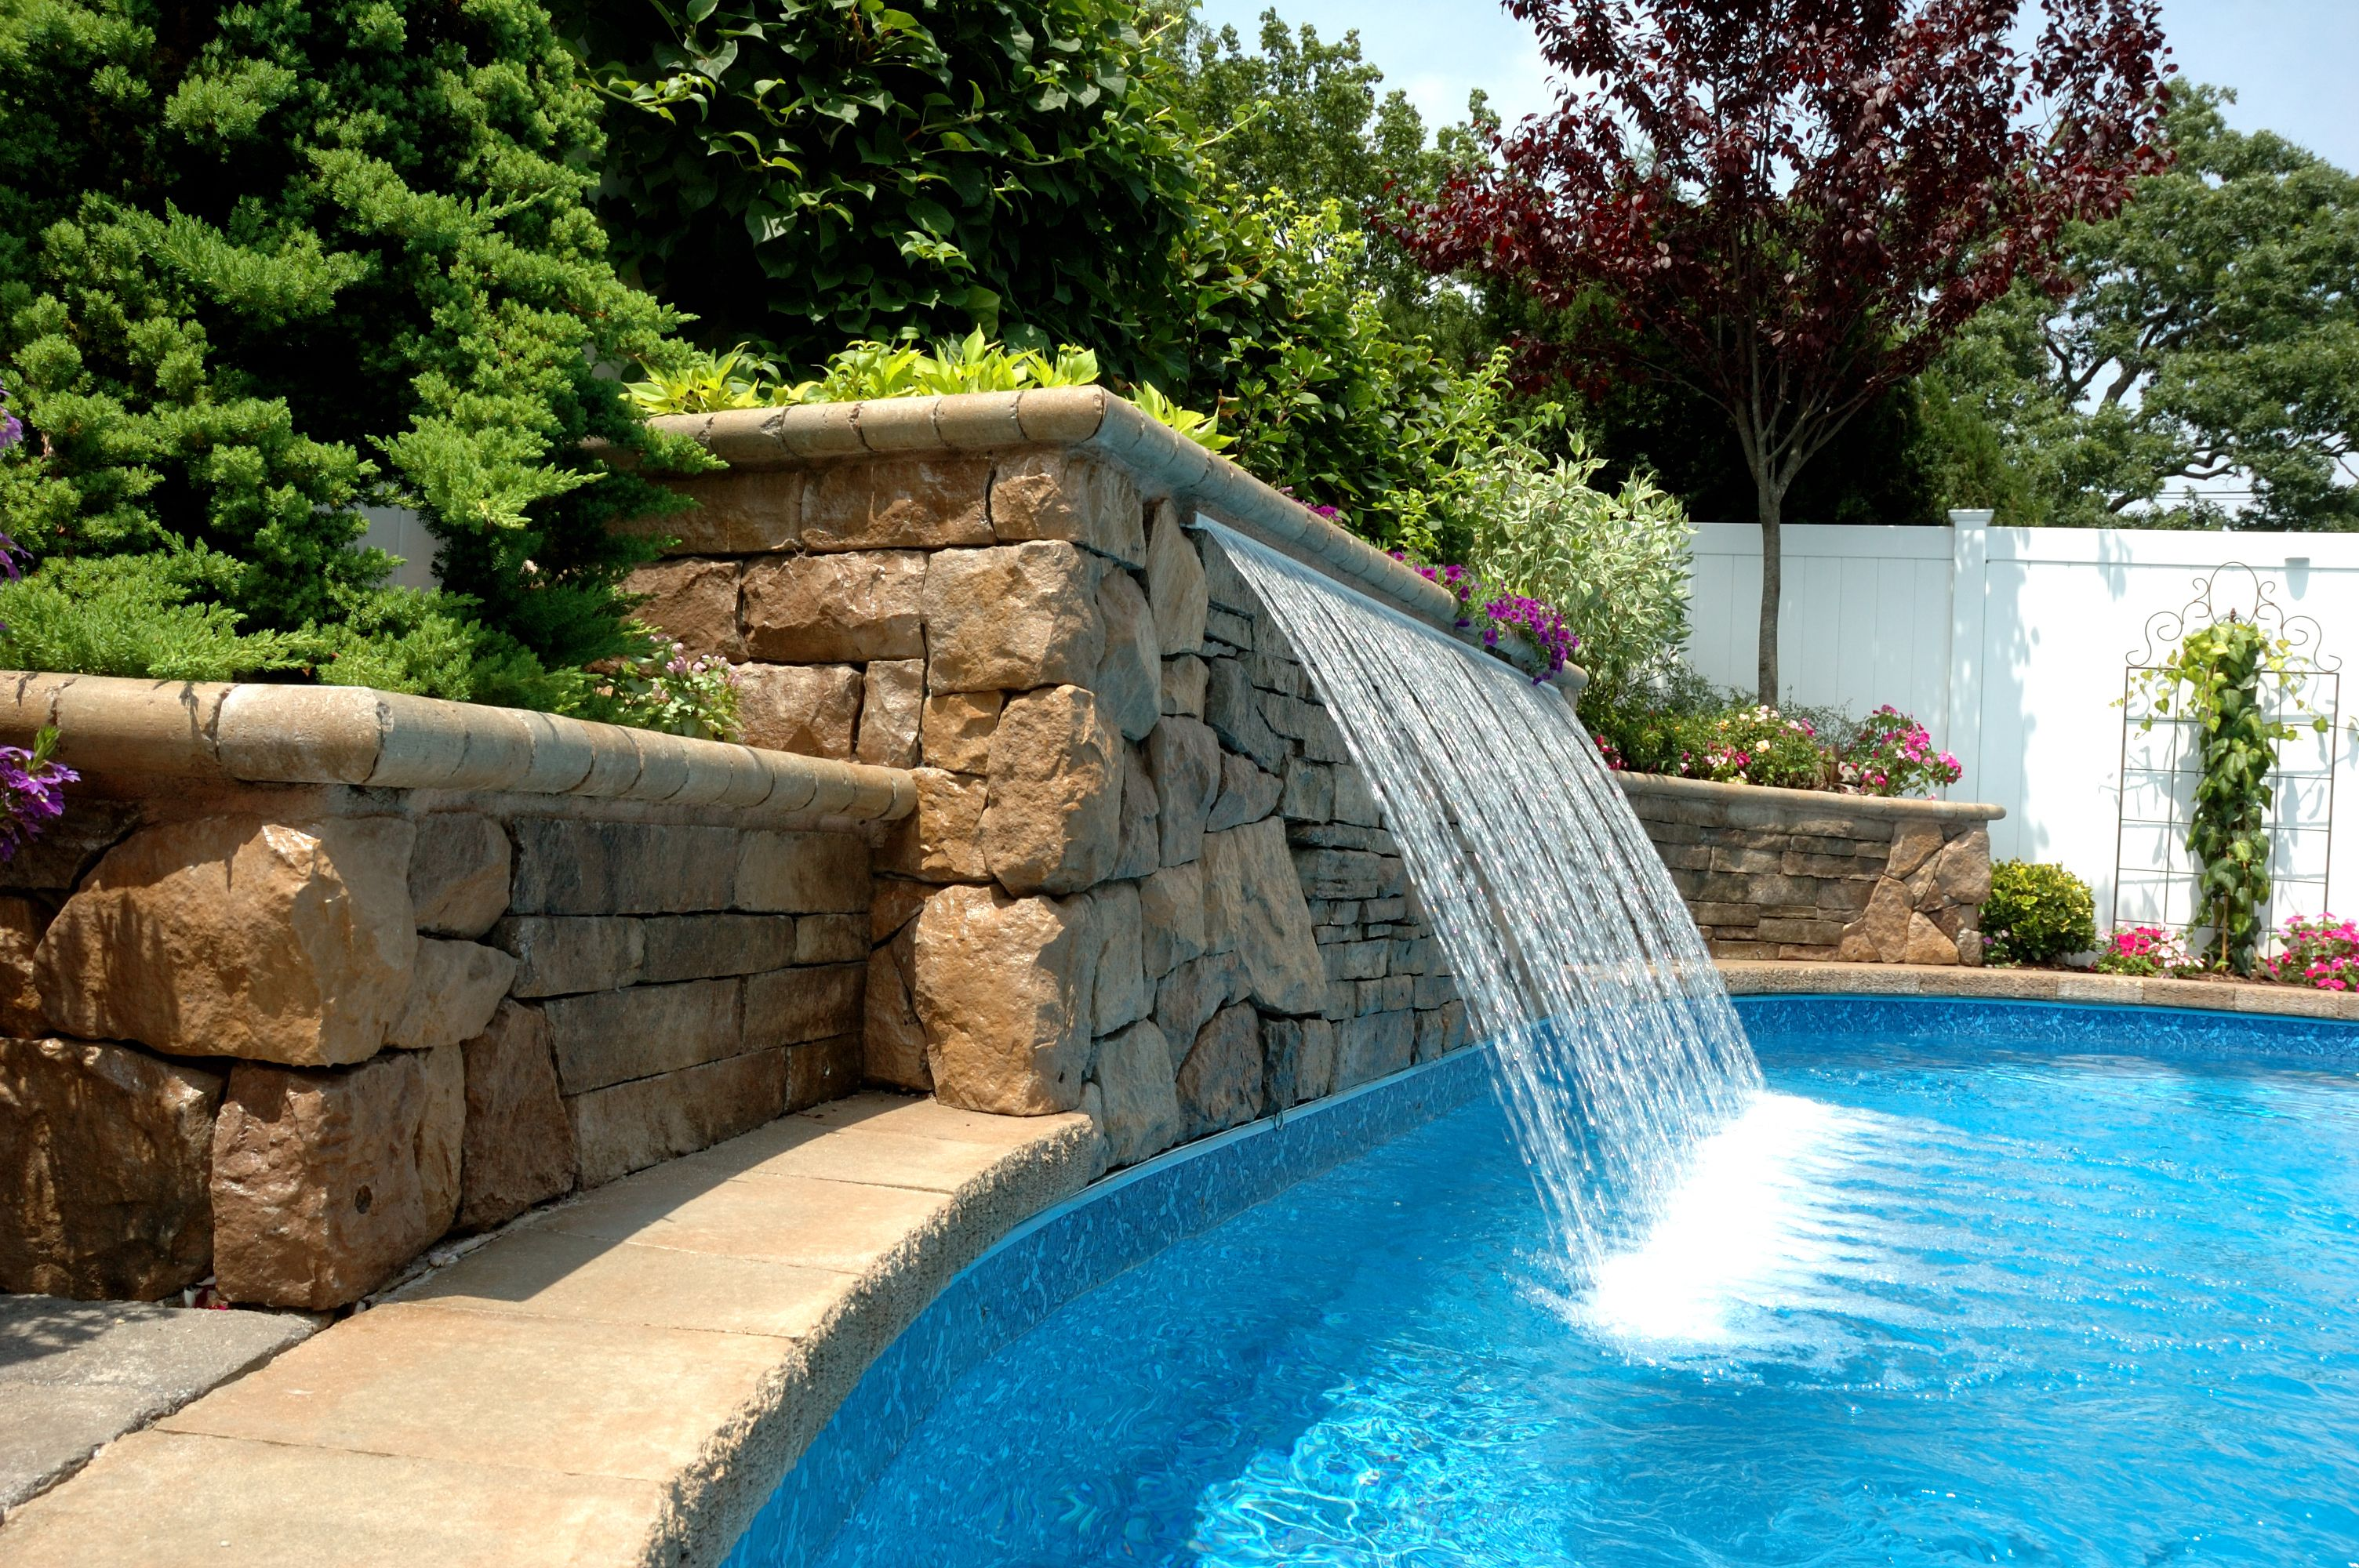 water features pool | Denver Pool Contractors - Swimming Pool Builders |  pool candy | Pinterest | Water features, Pool builders and Swimming pools